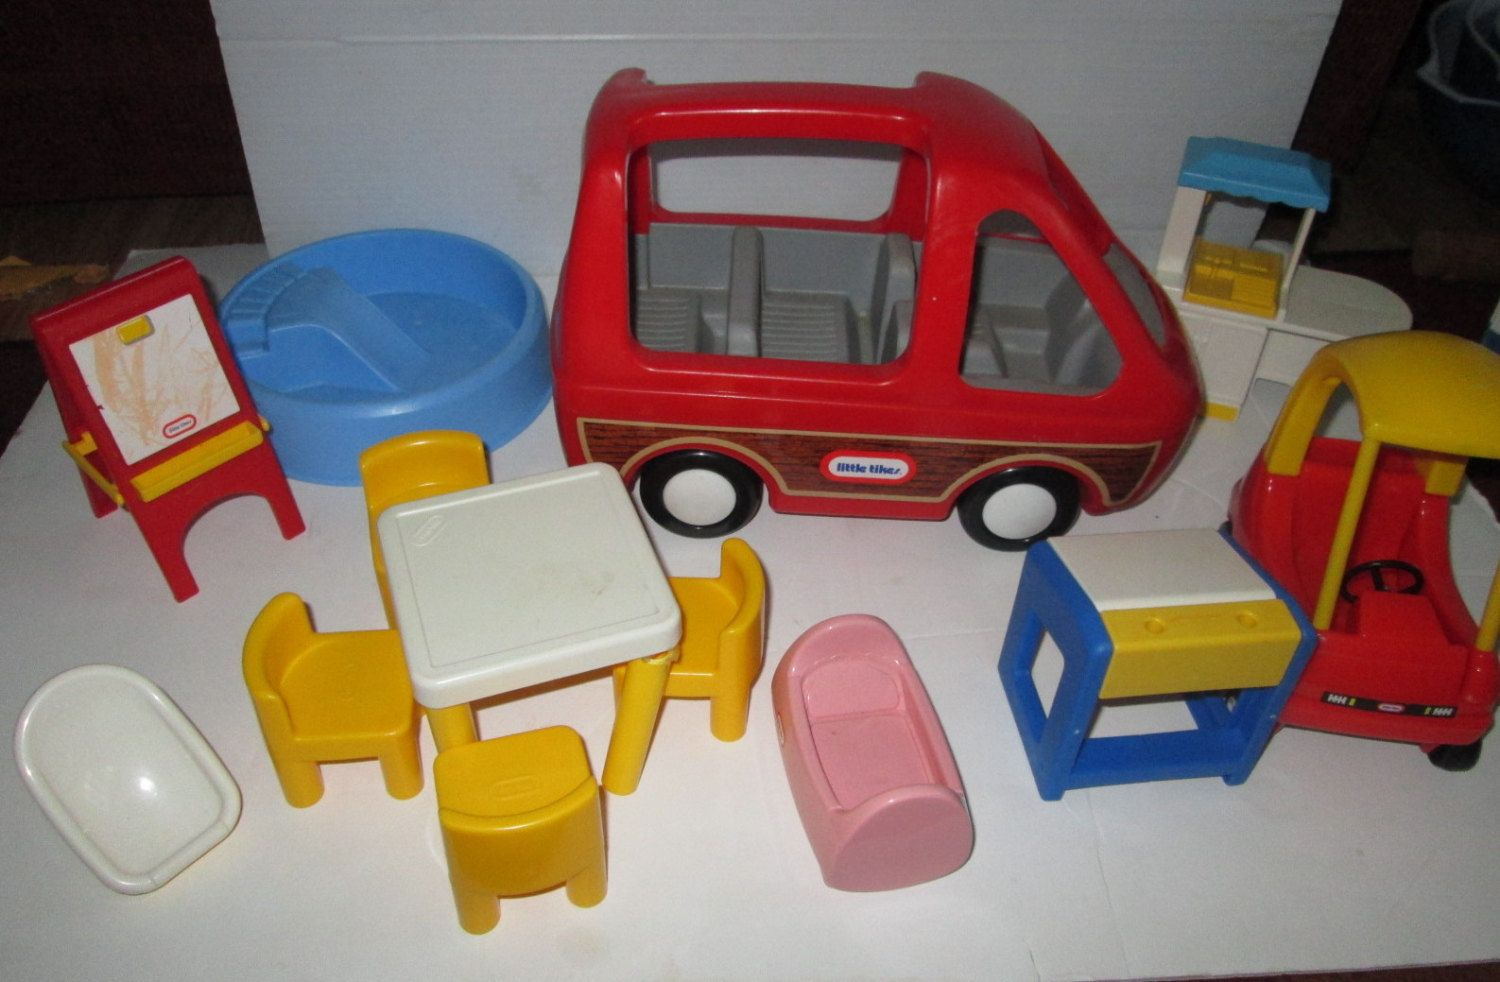 Lot Vintage Little Tikes Dollhouse Furniture Car Pool Table Desk More Doll  House 1980s Retro By Suburbantreasure On Etsy